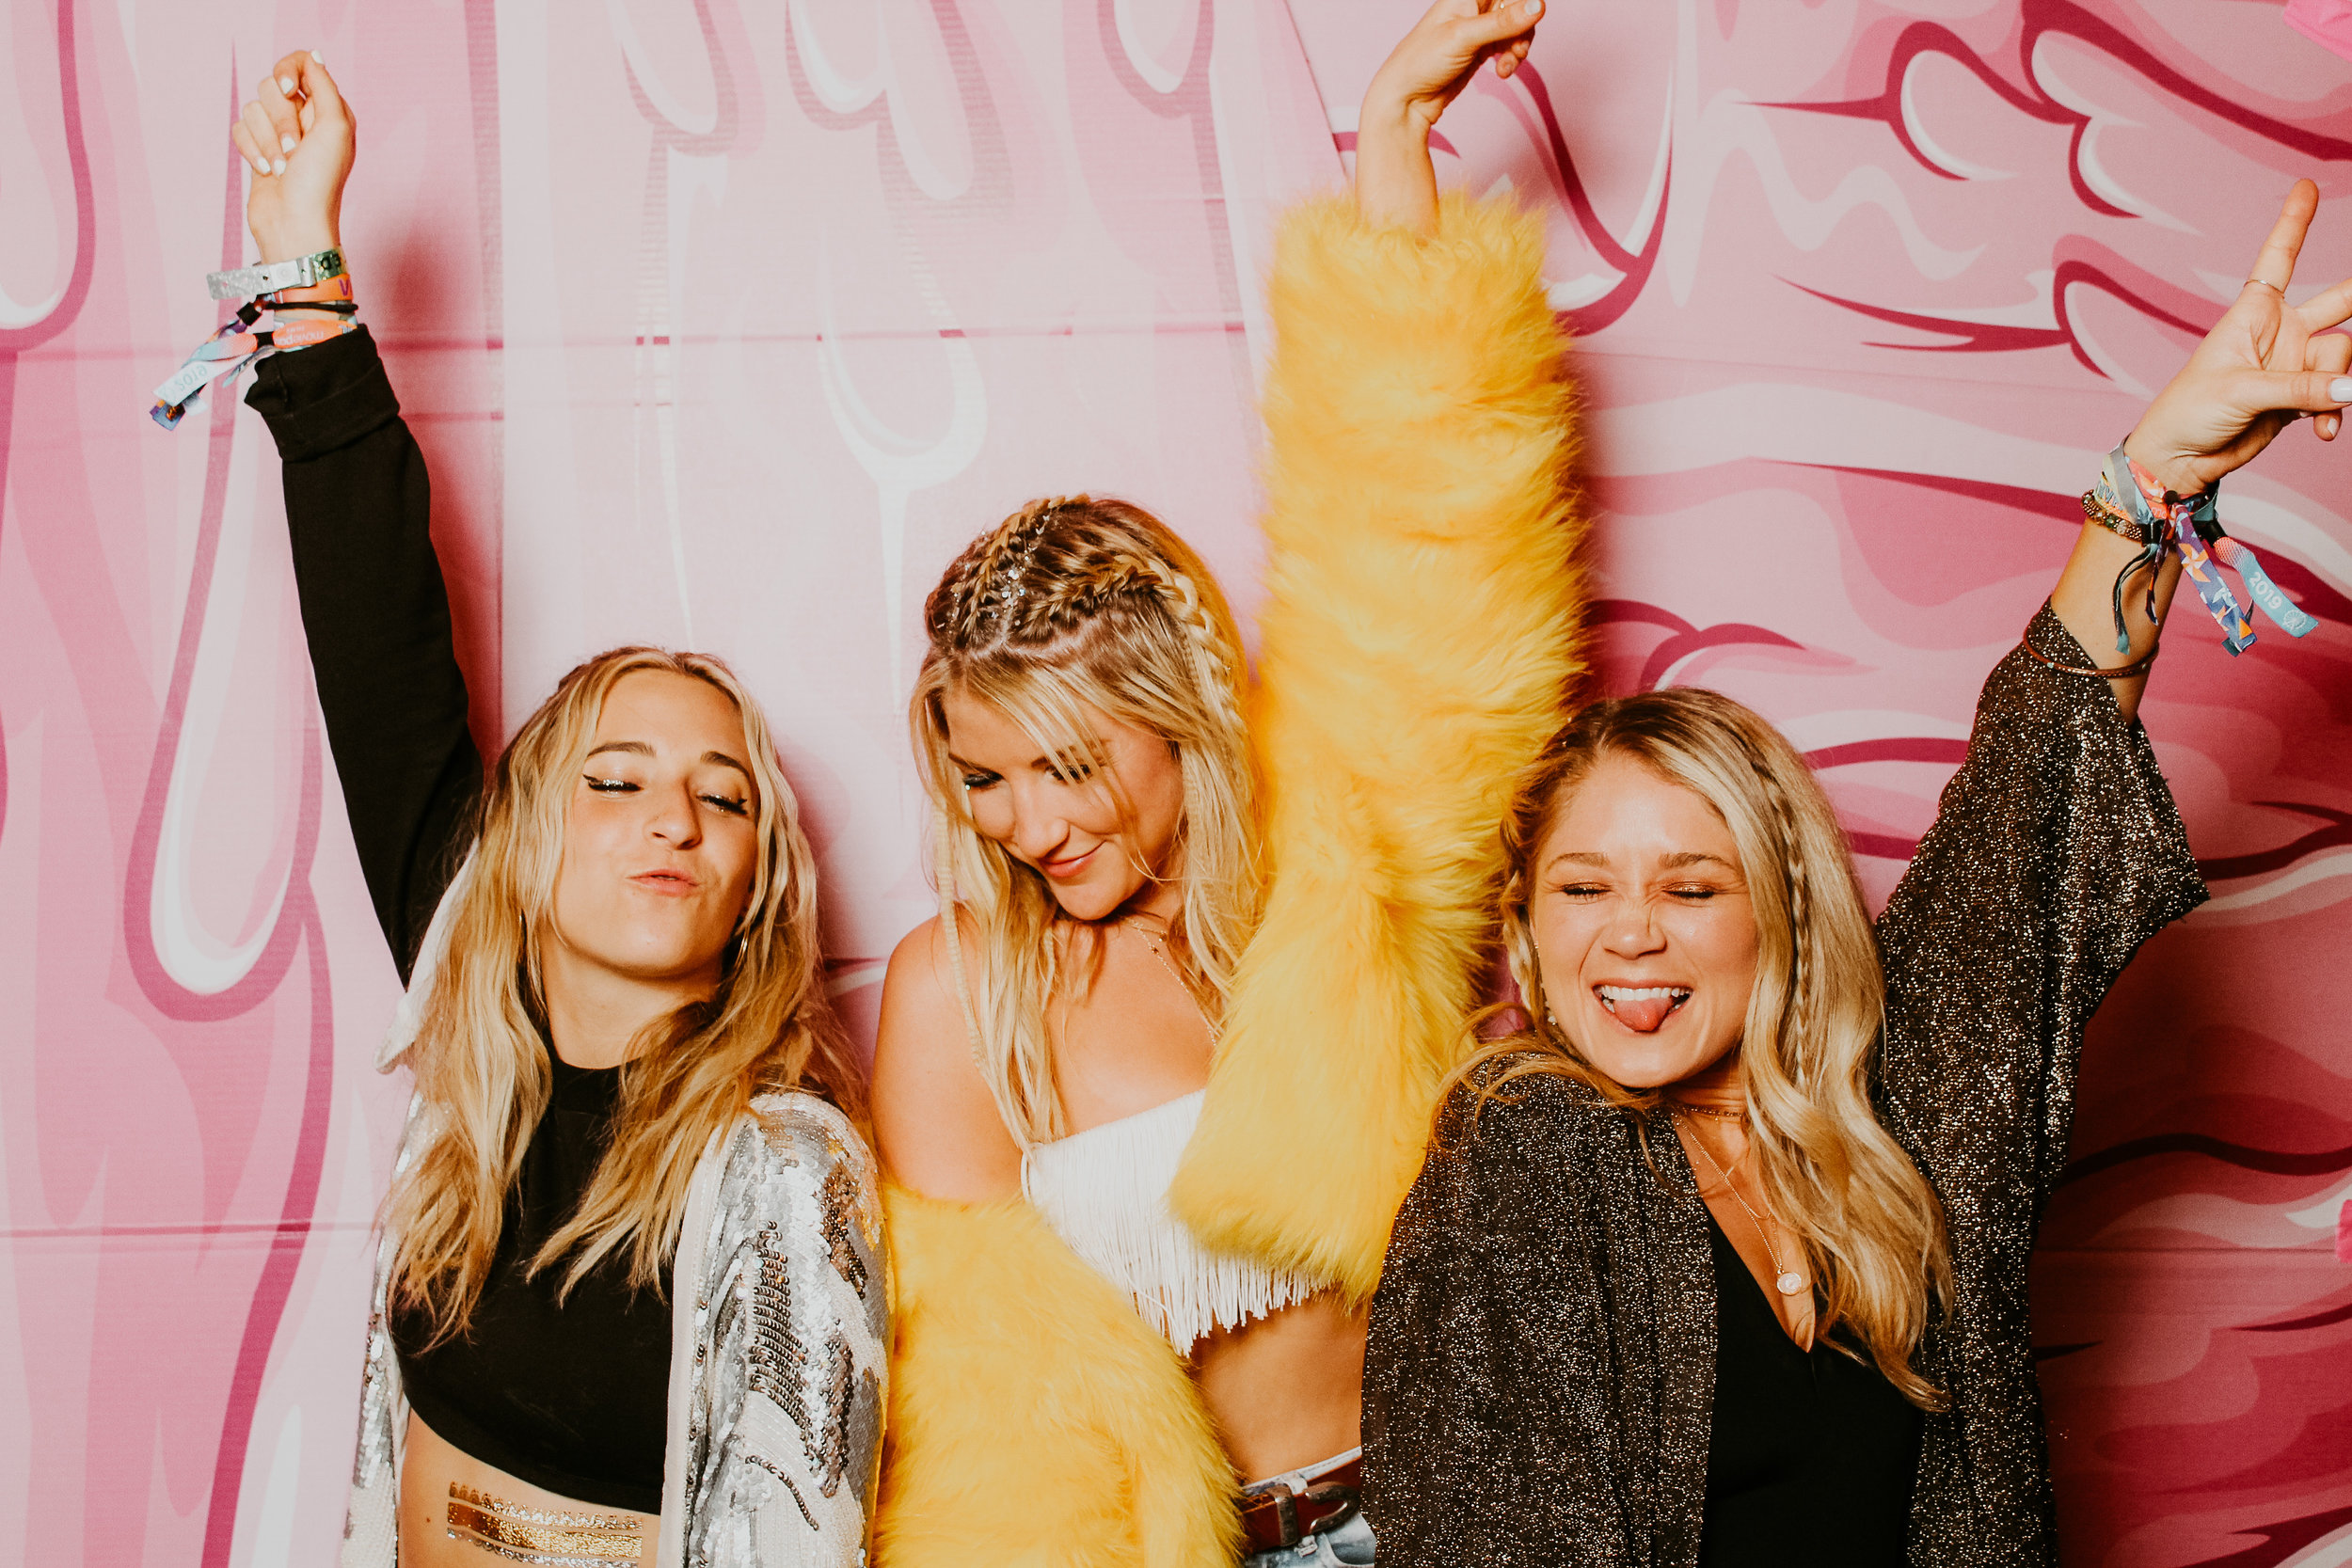 The Bachelor Photo Booth Rental Event DTLA